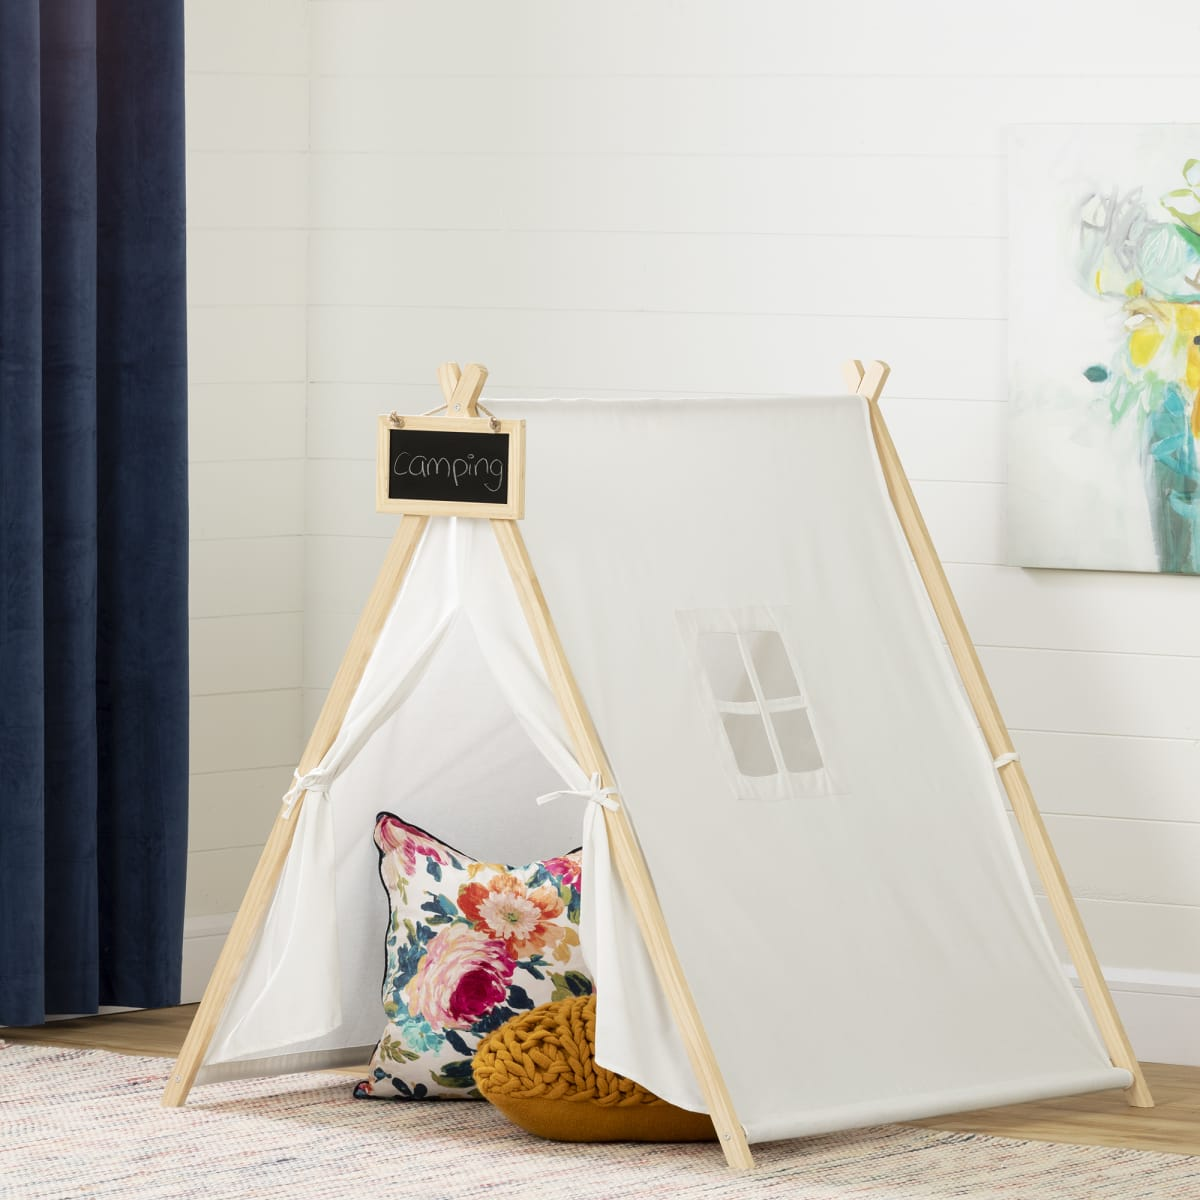 Sweedi Play Tent With Chalkboard Play Furniture Playroom Baby And Kids Products South Shore Furniture Us Furniture For Sale Designed And Manufactured In North America